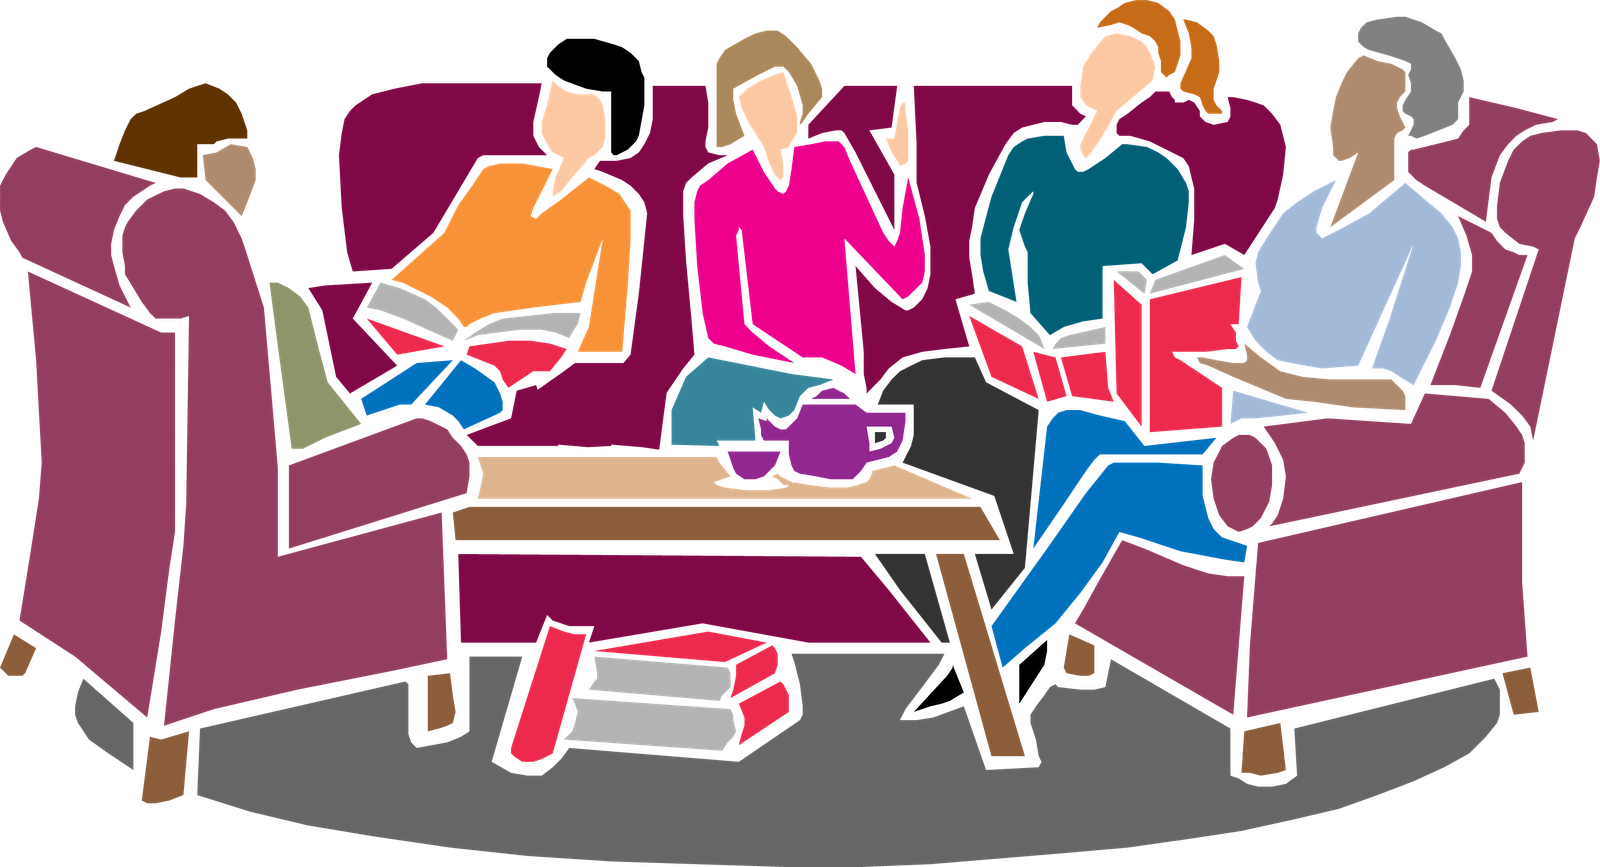 Club clipart group bible study. Book